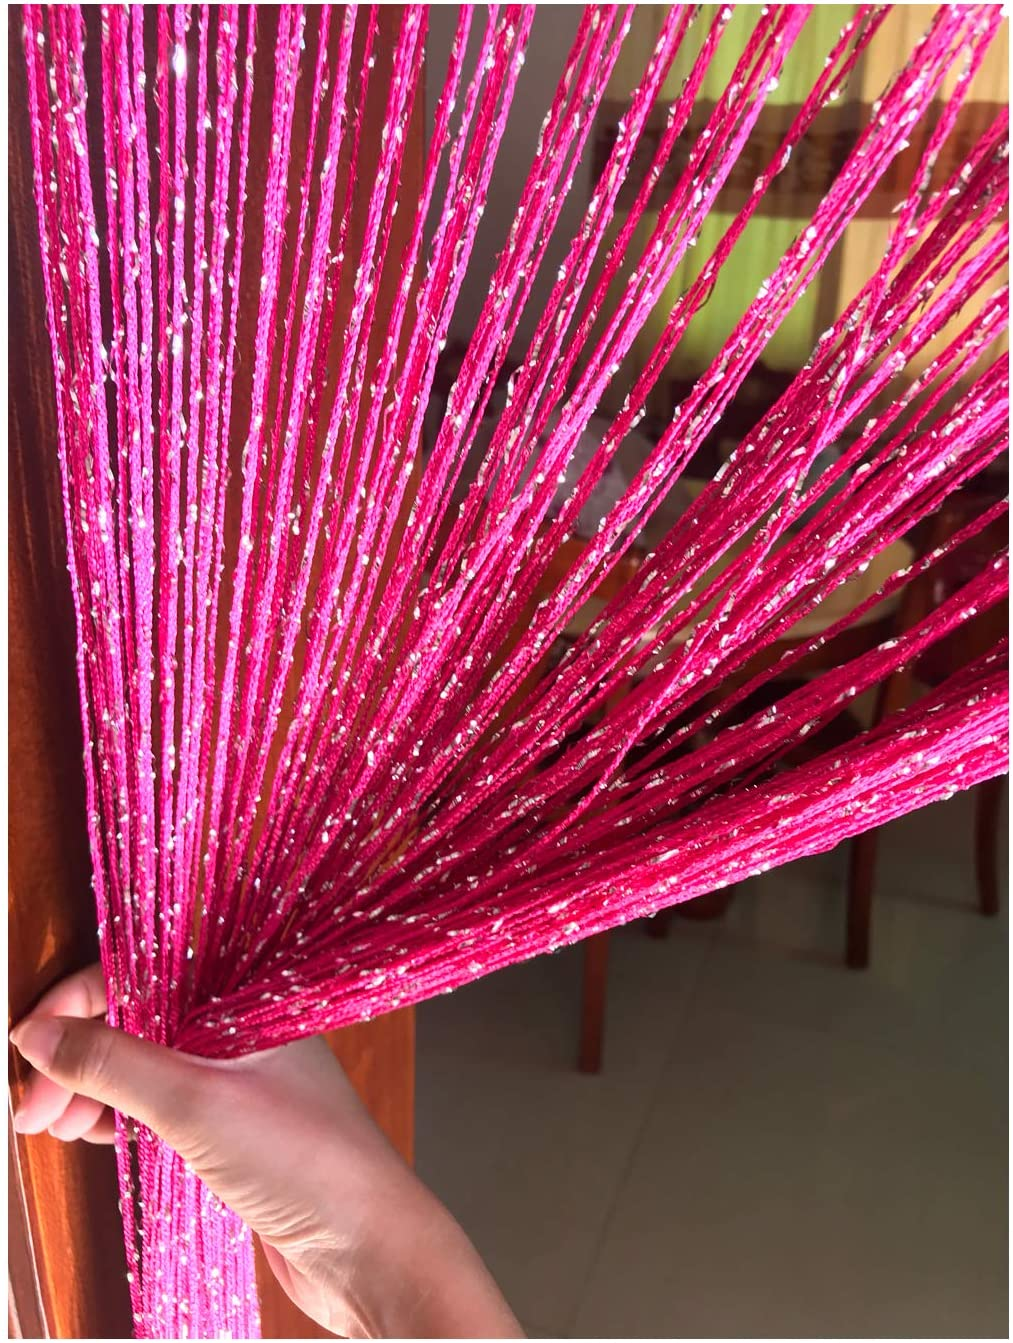 Eyotool 1x2 M Door String Curtain Rare Flat Silver Ribbon Thread Fringe Window Panel Room Divider Cute Strip Tassel for Wedding Coffee House Restaurant Parts, Rose Red